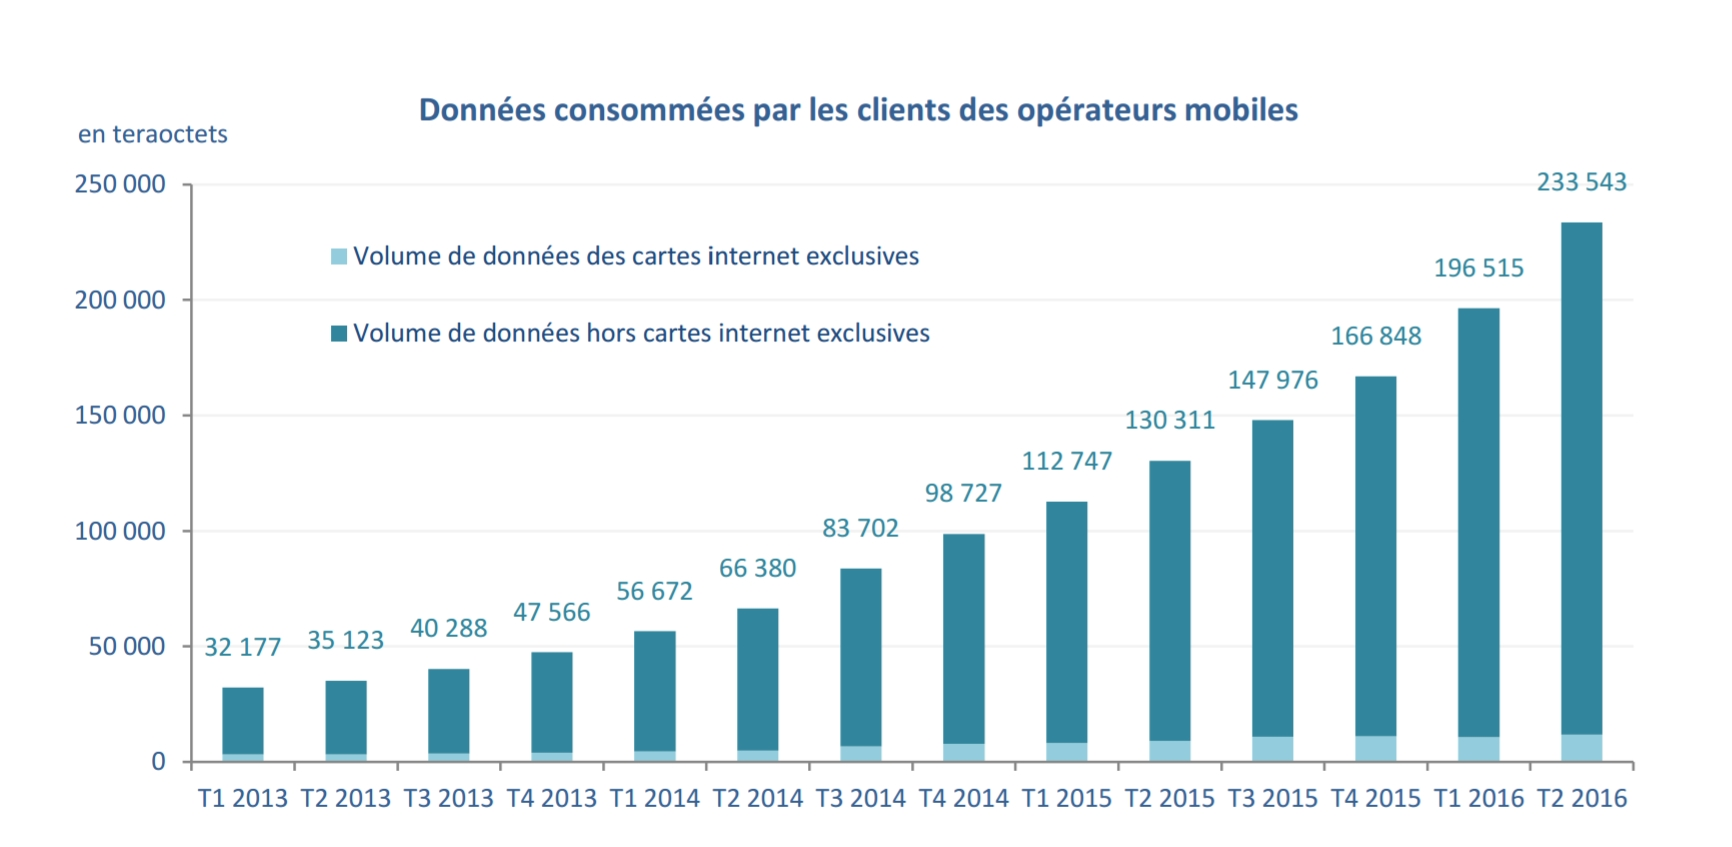 arcep-consommation-t2-2016-internet-exclusif-stagnation